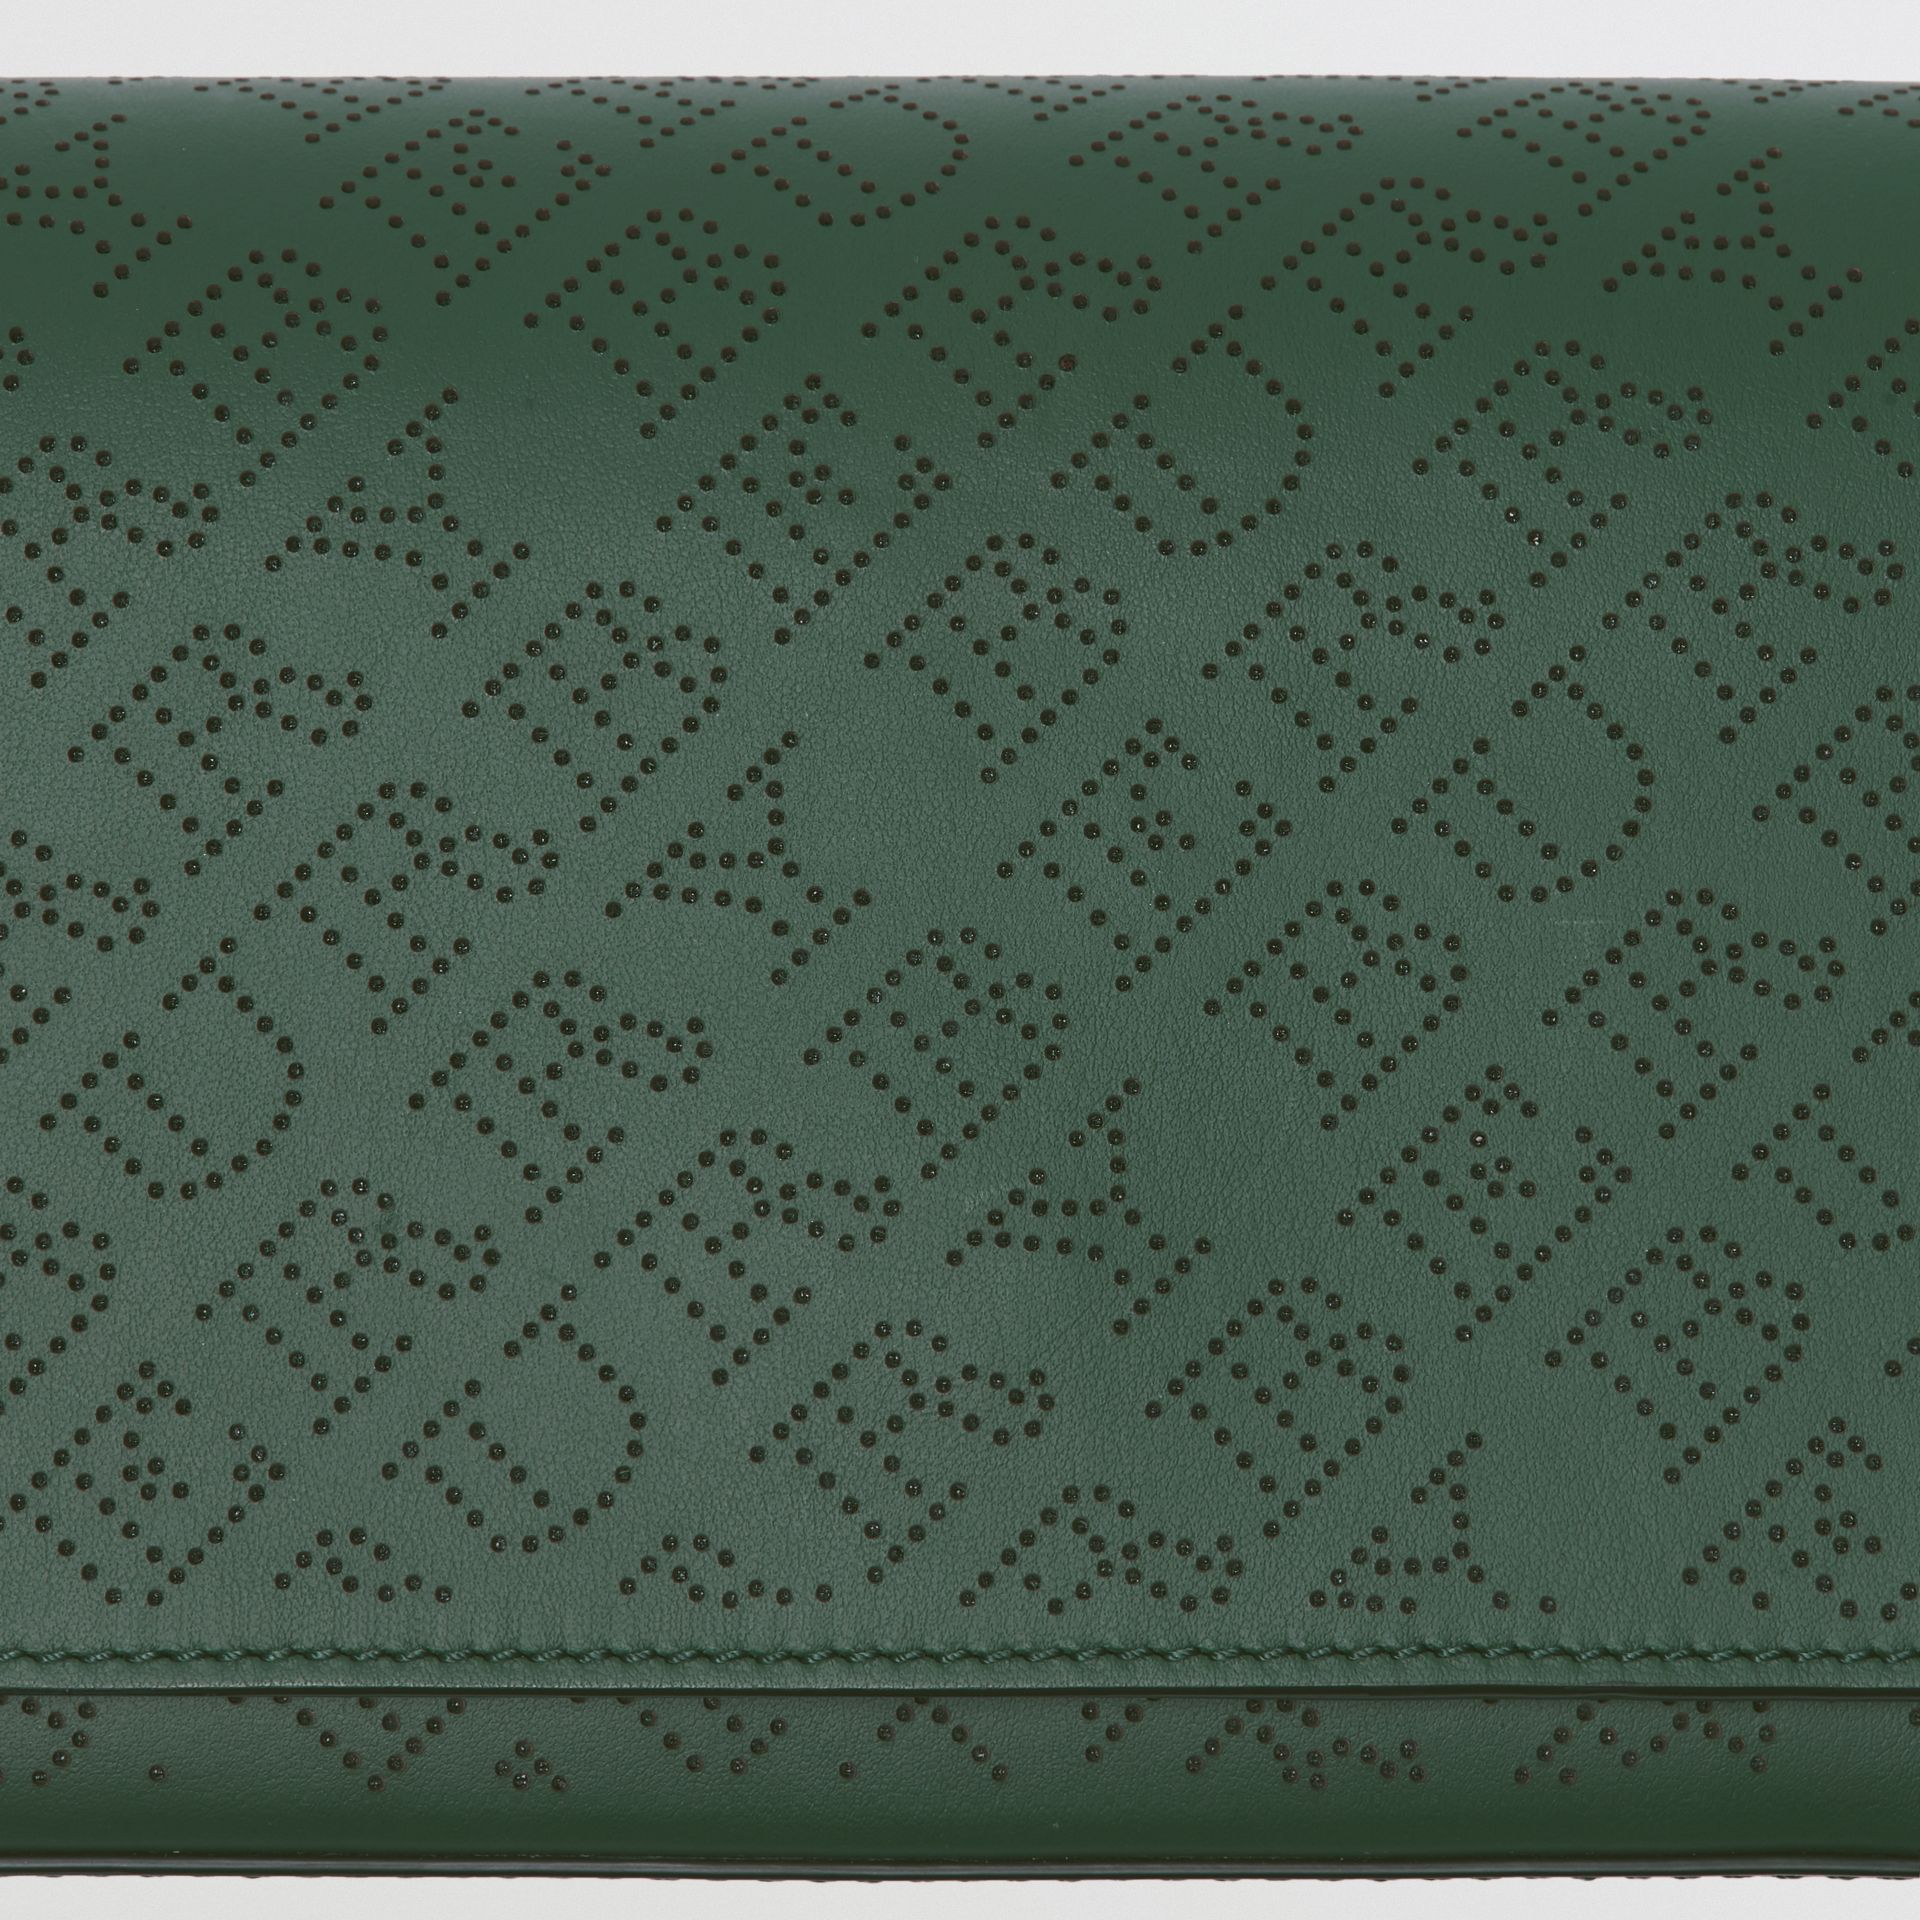 Perforated Logo Leather Wallet with Detachable Strap in Vintage Green - Women | Burberry Singapore - gallery image 1